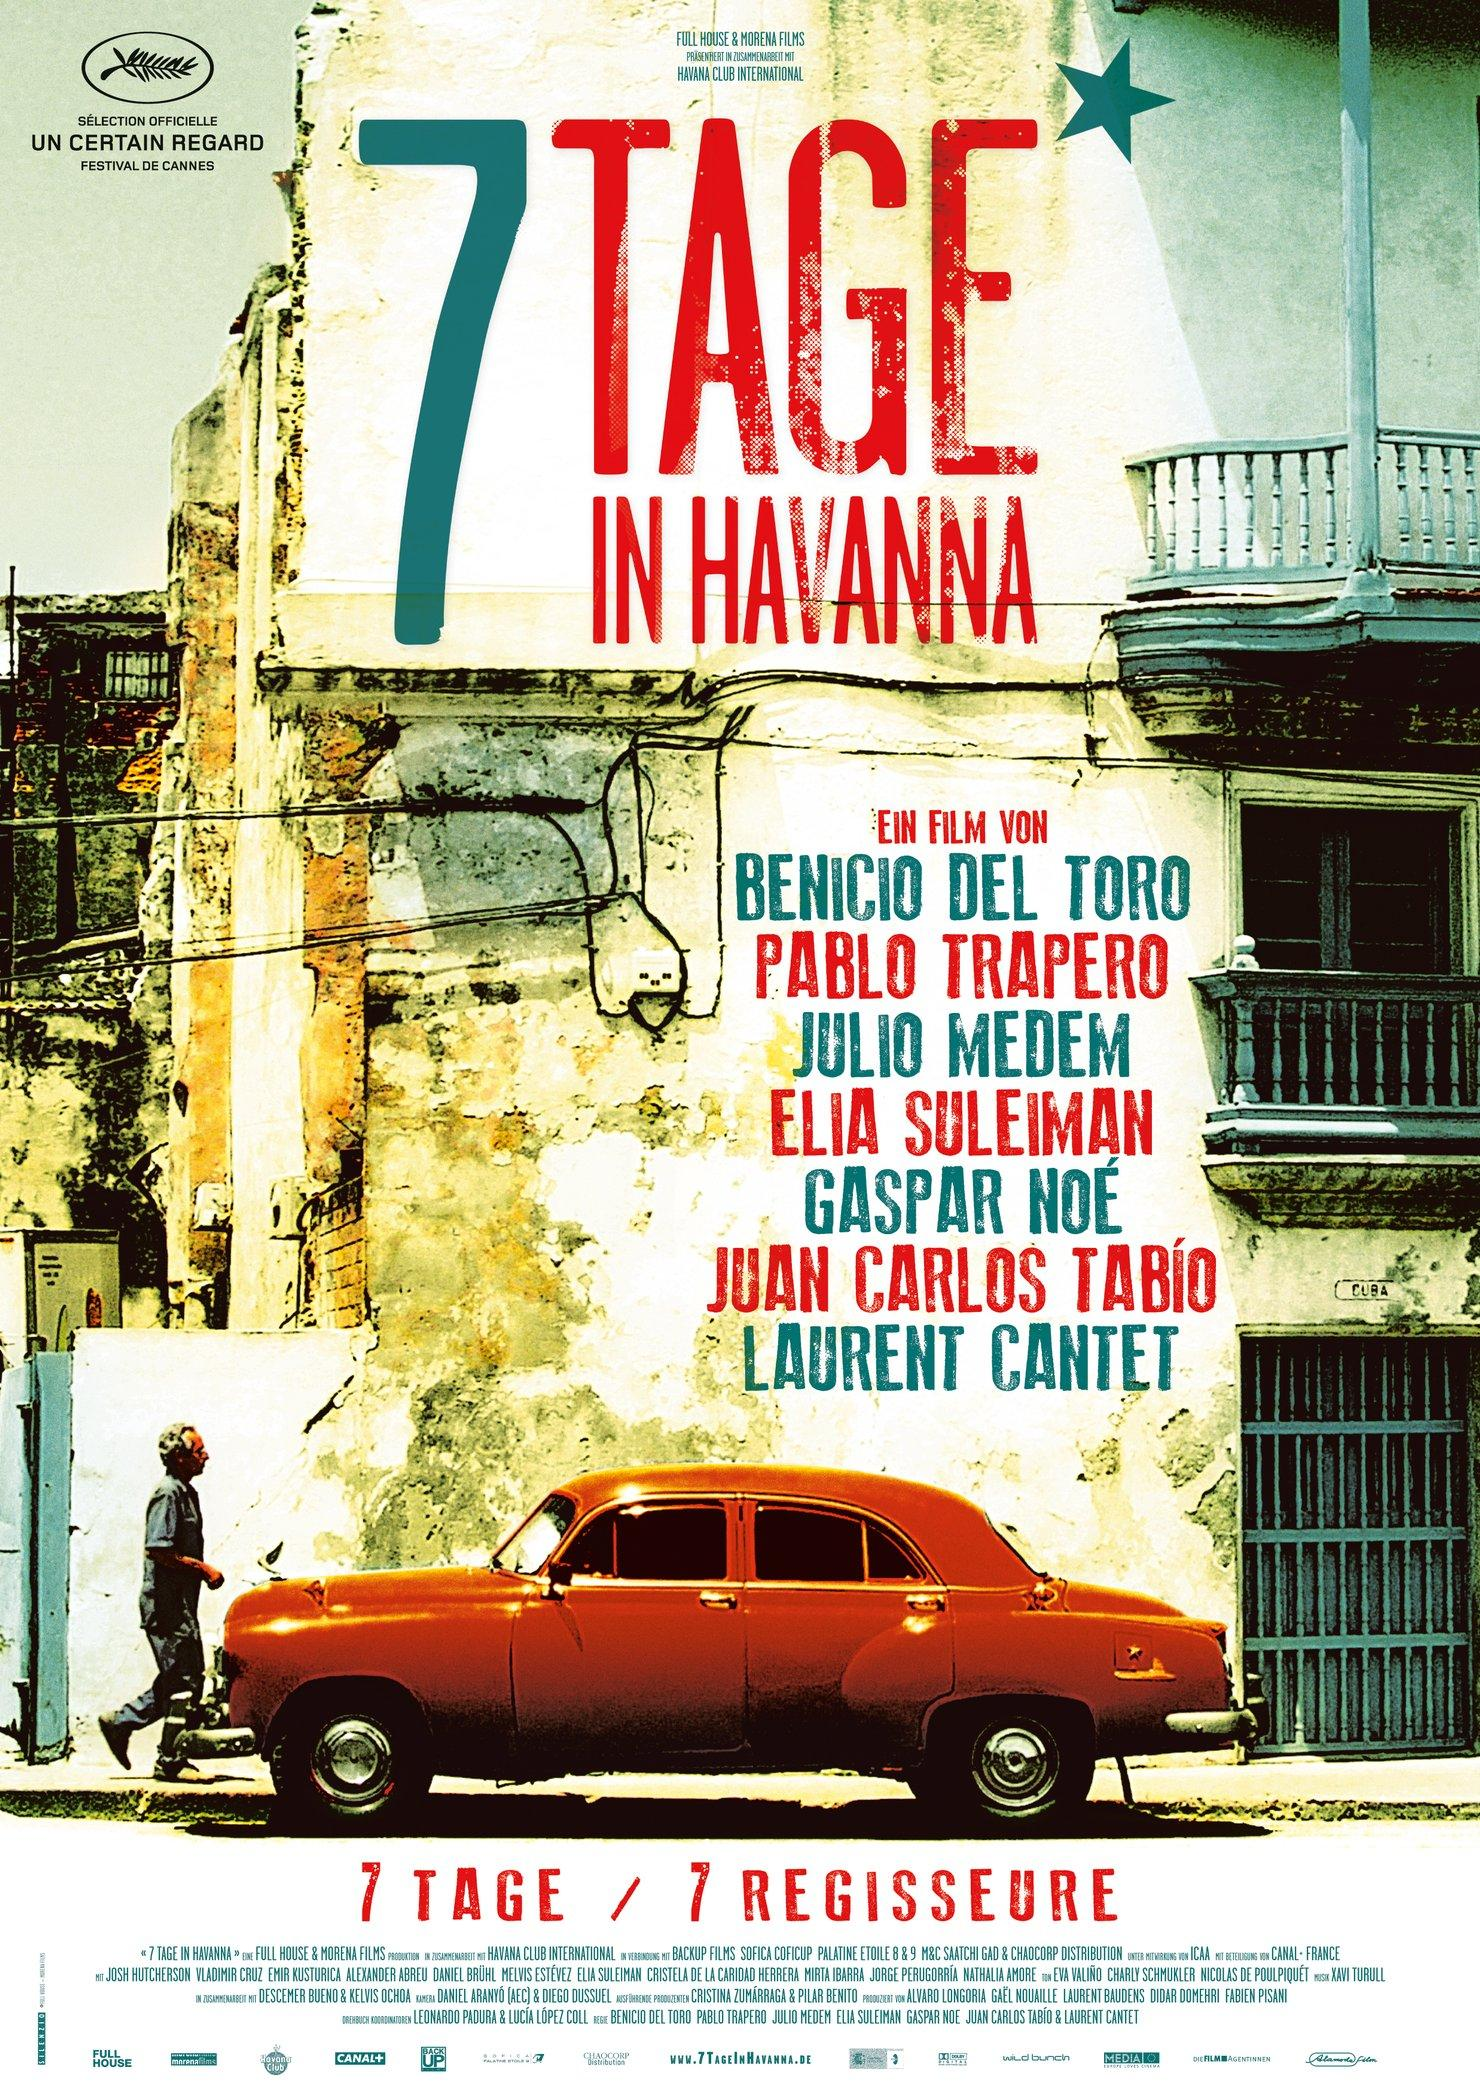 7 Tage in Havanna (Poster)